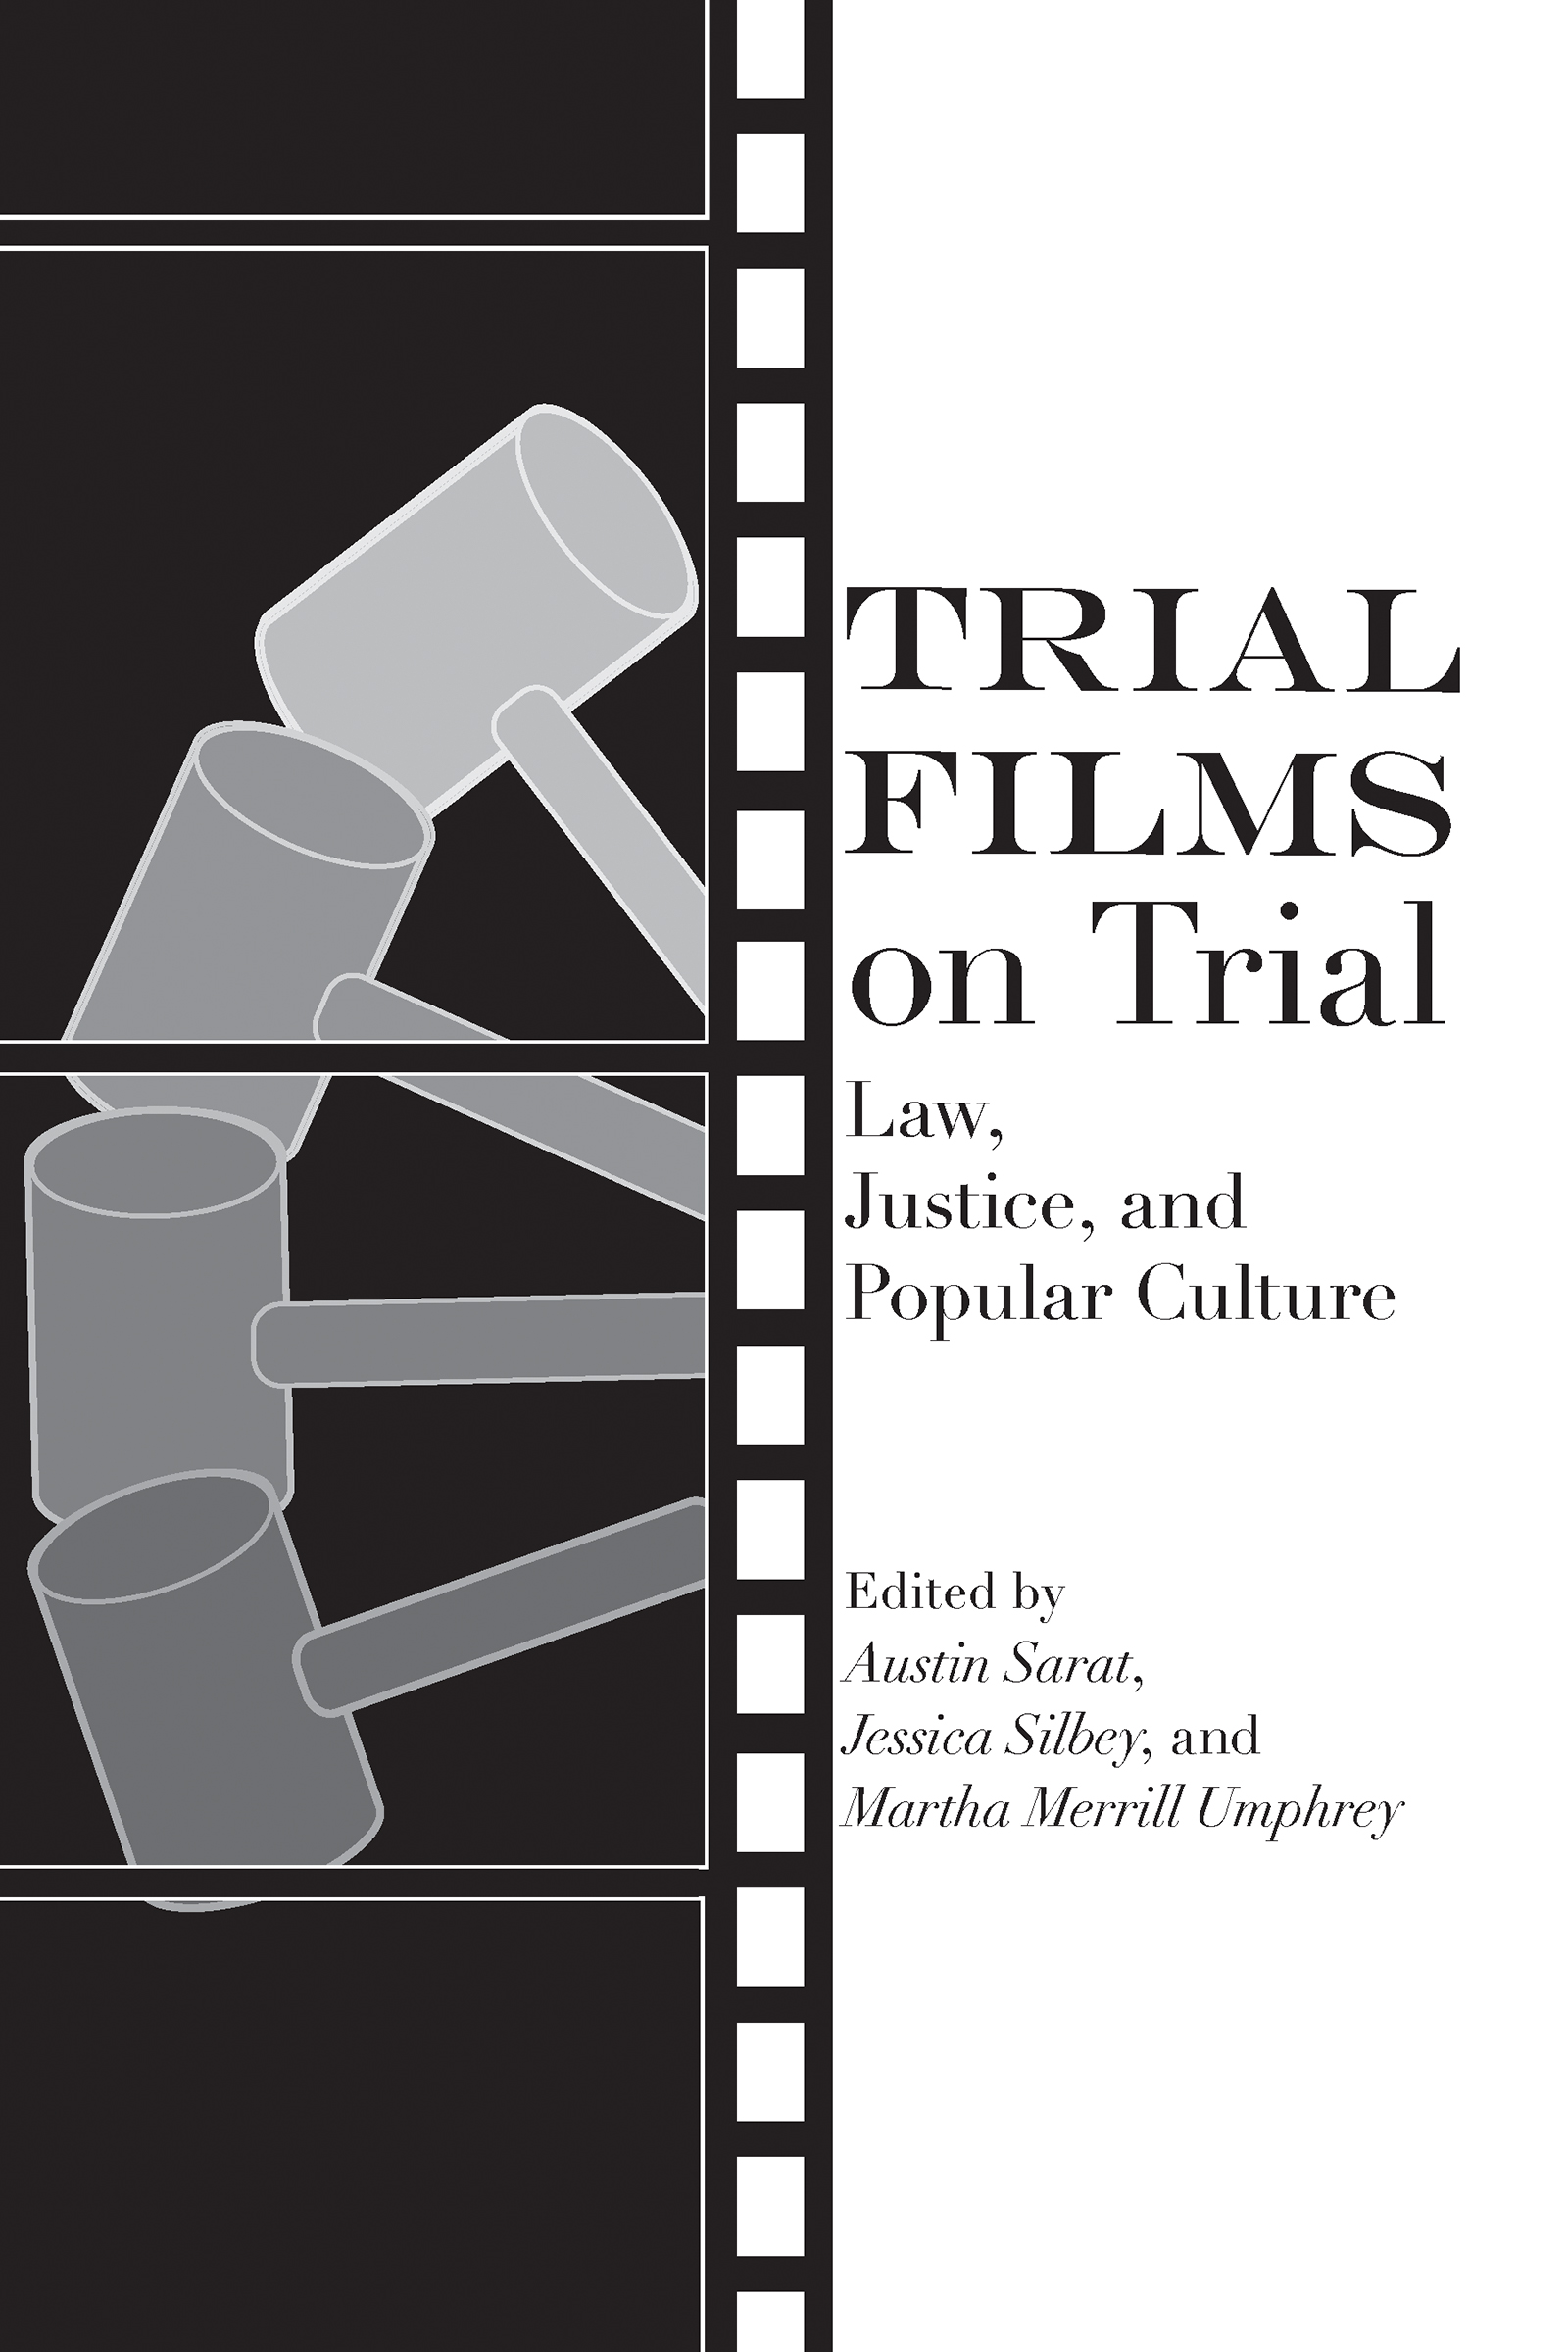 Book Cover-Trial Film on Trial